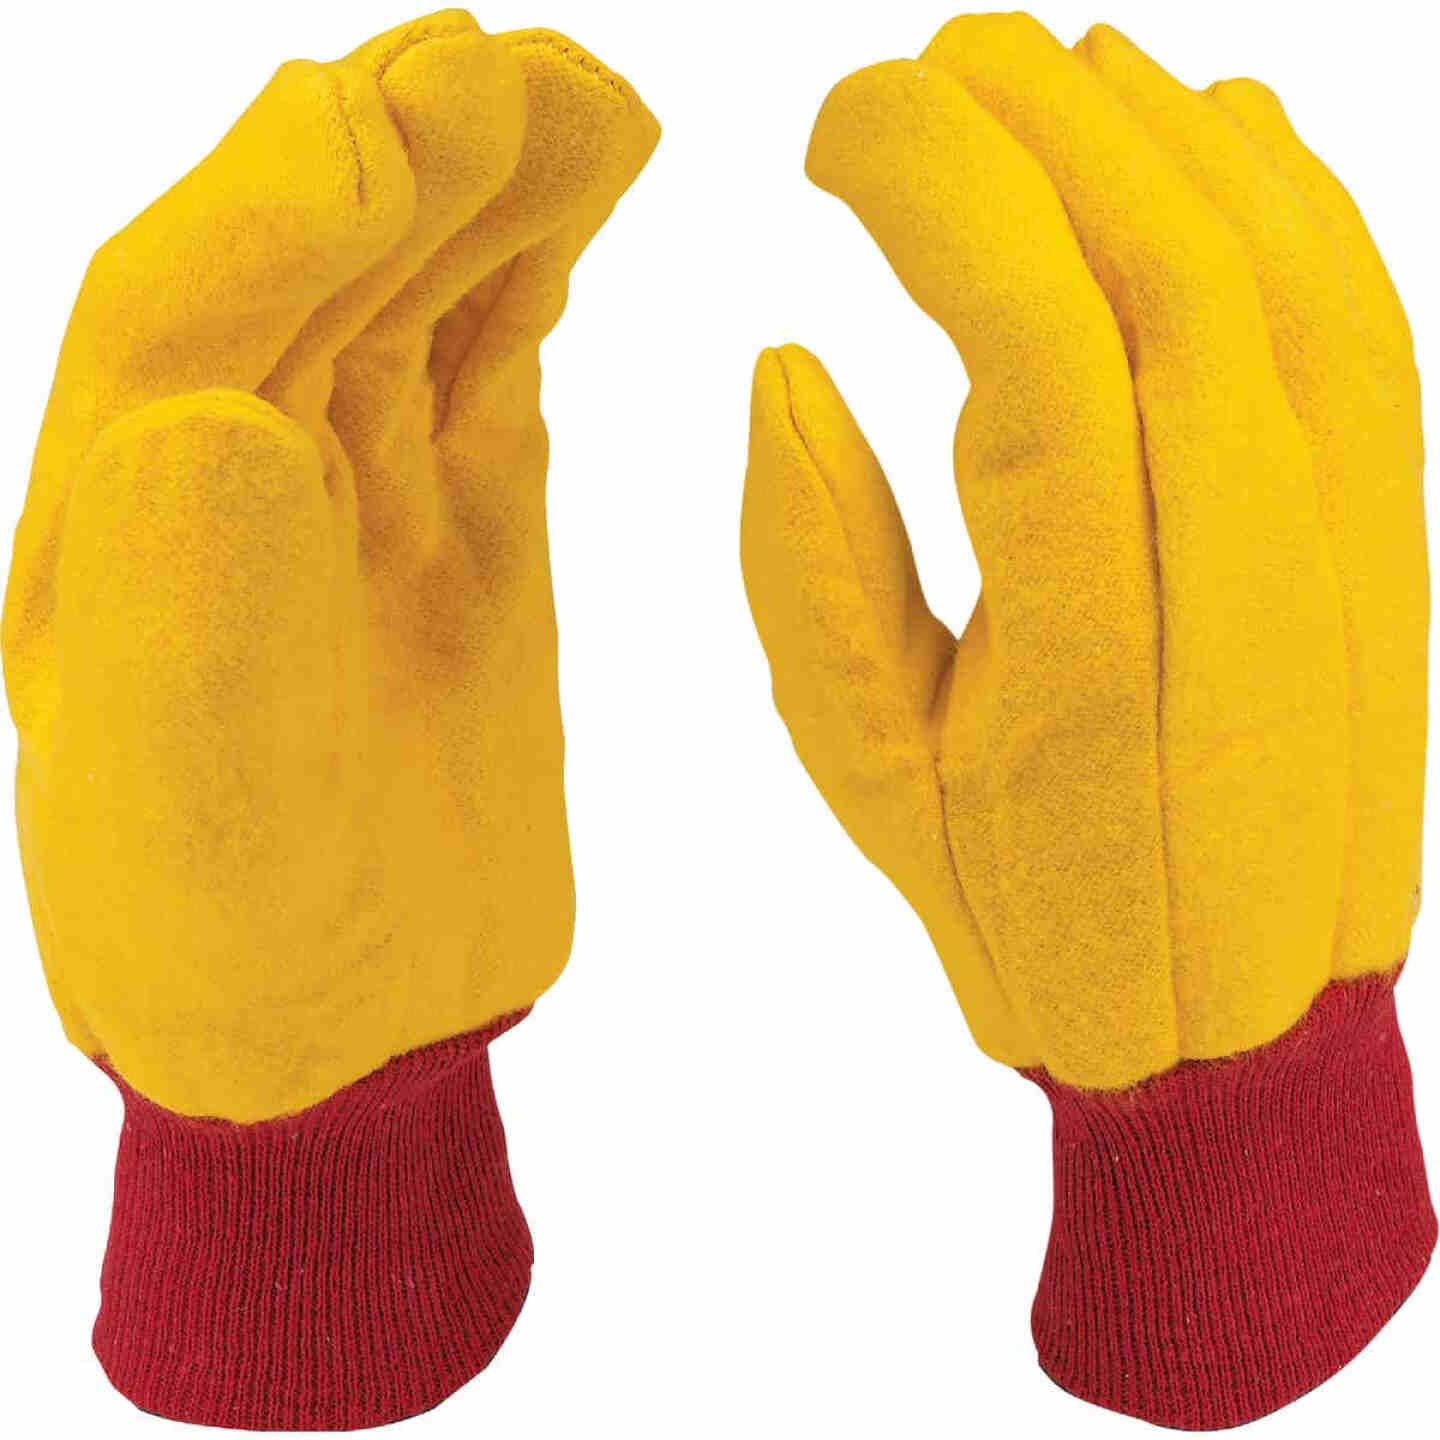 Do it Men's Large Fleece Chore Glove (6-Pack) Image 5